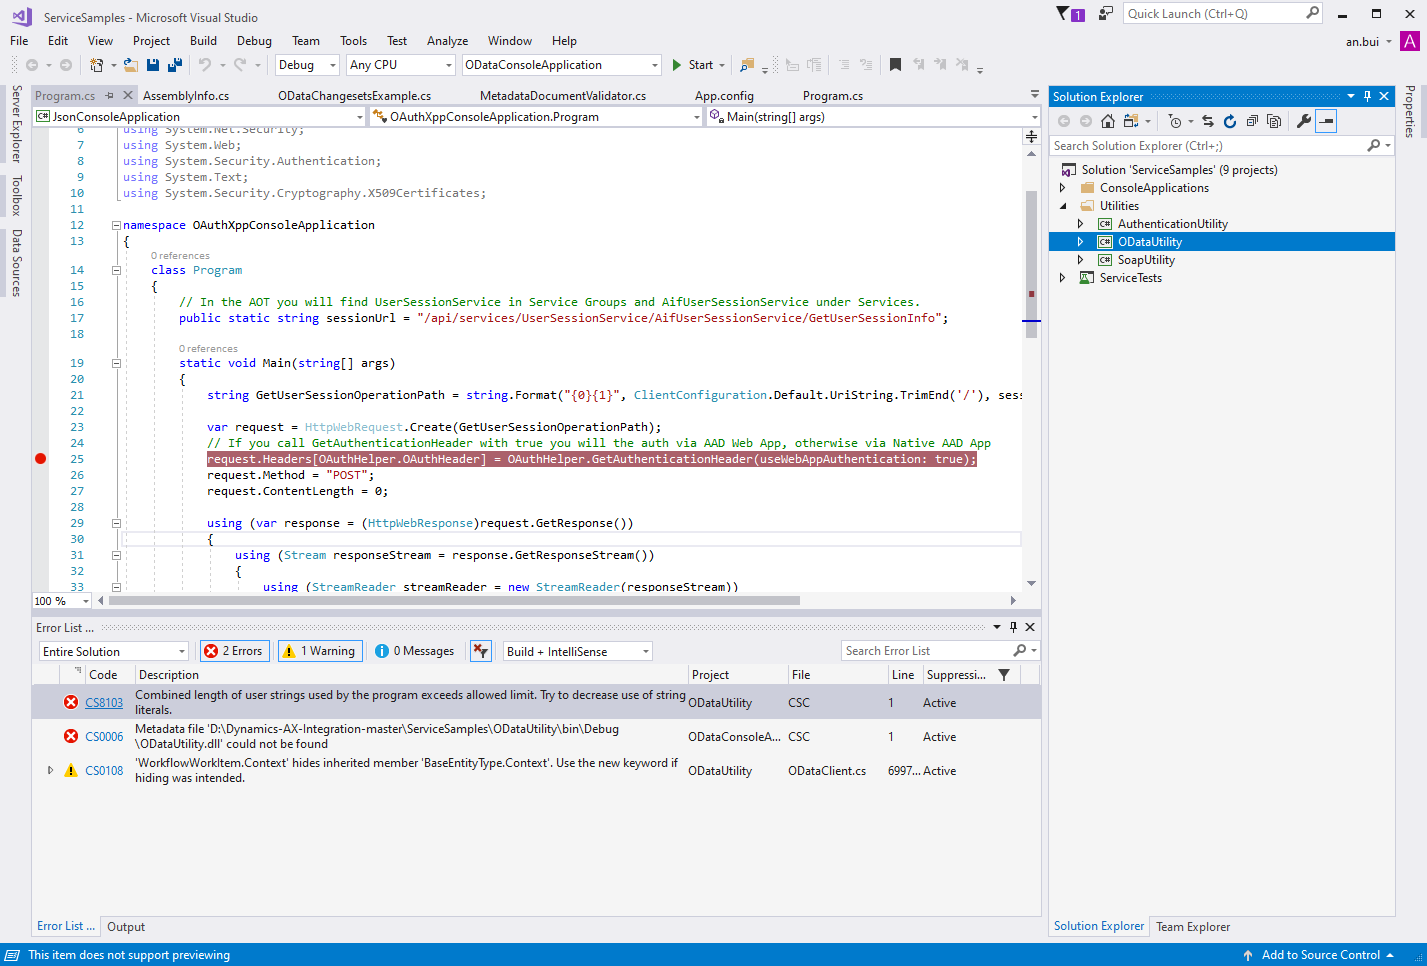 "ServiceSampIes - Microsoft Visual Studio  File Edit View Project Build Debug Team  Debug  Tools Test  Any CPU  Analyze Window Help  Start  App.config  Program.cs  args)  Quick Launch (Ctrl+Q)  Solution Explorer  Search Solution Explorer (Ctrl+;)  Solution 'ServiceSampIes' (g projects)  ConsoleAppIications  Utilities  @ Authentication Utility  t) ODataLltiIity  @ SoapUtiIity  ServiceTests  an.bui  ODataConsoIeAppIication  MetadataDocumentVaIidator  m Program.cs -E X Assemblylnfo.cs  @JsonConsoIeAppIication  using System.Web;  ODataChangesetsExampIe.cs  OAuthXppConsoIeAppIication.Program  using System.Security.Authentication;  using System. Text;  using System.Security.Cyptography.X5ß9Certificates;  [S namespace OAuthXppConsoIeAppIication  12  14  19  25  29  31  33  100 %  Error List  -  -  -  -  -  class  Program  // In the AOT you will find UserSessionServ'ice in Service Groups and AifLlserSessionServ'ice under Services.  public static string sessionLlrI =  "" / a pi/ setwices/LlserSes s ionSetwice/ AifLlserSes s ionSetwice/GetLlserSes s ion I nfo"" ;  static void Main (stringC) args)  string GetLlserSessionOperationPath =  string. ClientConfiguration .DefauIt.UriString.TrimEnd('/'), ses:  HttpwebRequest.Create(GetLlserSessionoperationPath);  var request =  // If you call GetAuthenticationHeader with true you will the auth via Web App, otherwise via Native App  -equest. HeadersCoguthHeIper .0AuthHeader] = aguthHeIper- .GetguthenticaticnHeader(useÄebgppguthenticaticn: true)  request.method = ""POST"";  request. ContentLength = e;  using (var response =  using (Stream  res pon se. GetRes pon seStream ( ) )  responseStream =  usin2 (StreamReader  streamReader  — new StreamReader(resoonseStream))  Search Error List  Entire Solution  Code  O CS8103  O CSDD06  D CS01D8  Description  Project  Combined length of user strings used by the program exceeds allowed limit. TO' to decrease use of string  O DataUtiIit,'  csc  literals.  Metadata file  ODataConsoIeA..  . csc  IODataUtiIity.dII' could not be found  'WorkflowWorkItem.Context' hides inherited member '8aseEntityType.Context'. Use the new kemord if  ODataCIient.cs  Line Suppressi..  Active  Active  6997... Active  hiding was intended.  ODataUtiIit,'  Error List Output  This item aces nct suppcrt previewing  Solution Explorer  Team Explorer  I' Add tc Scurce Ccntrcl •"